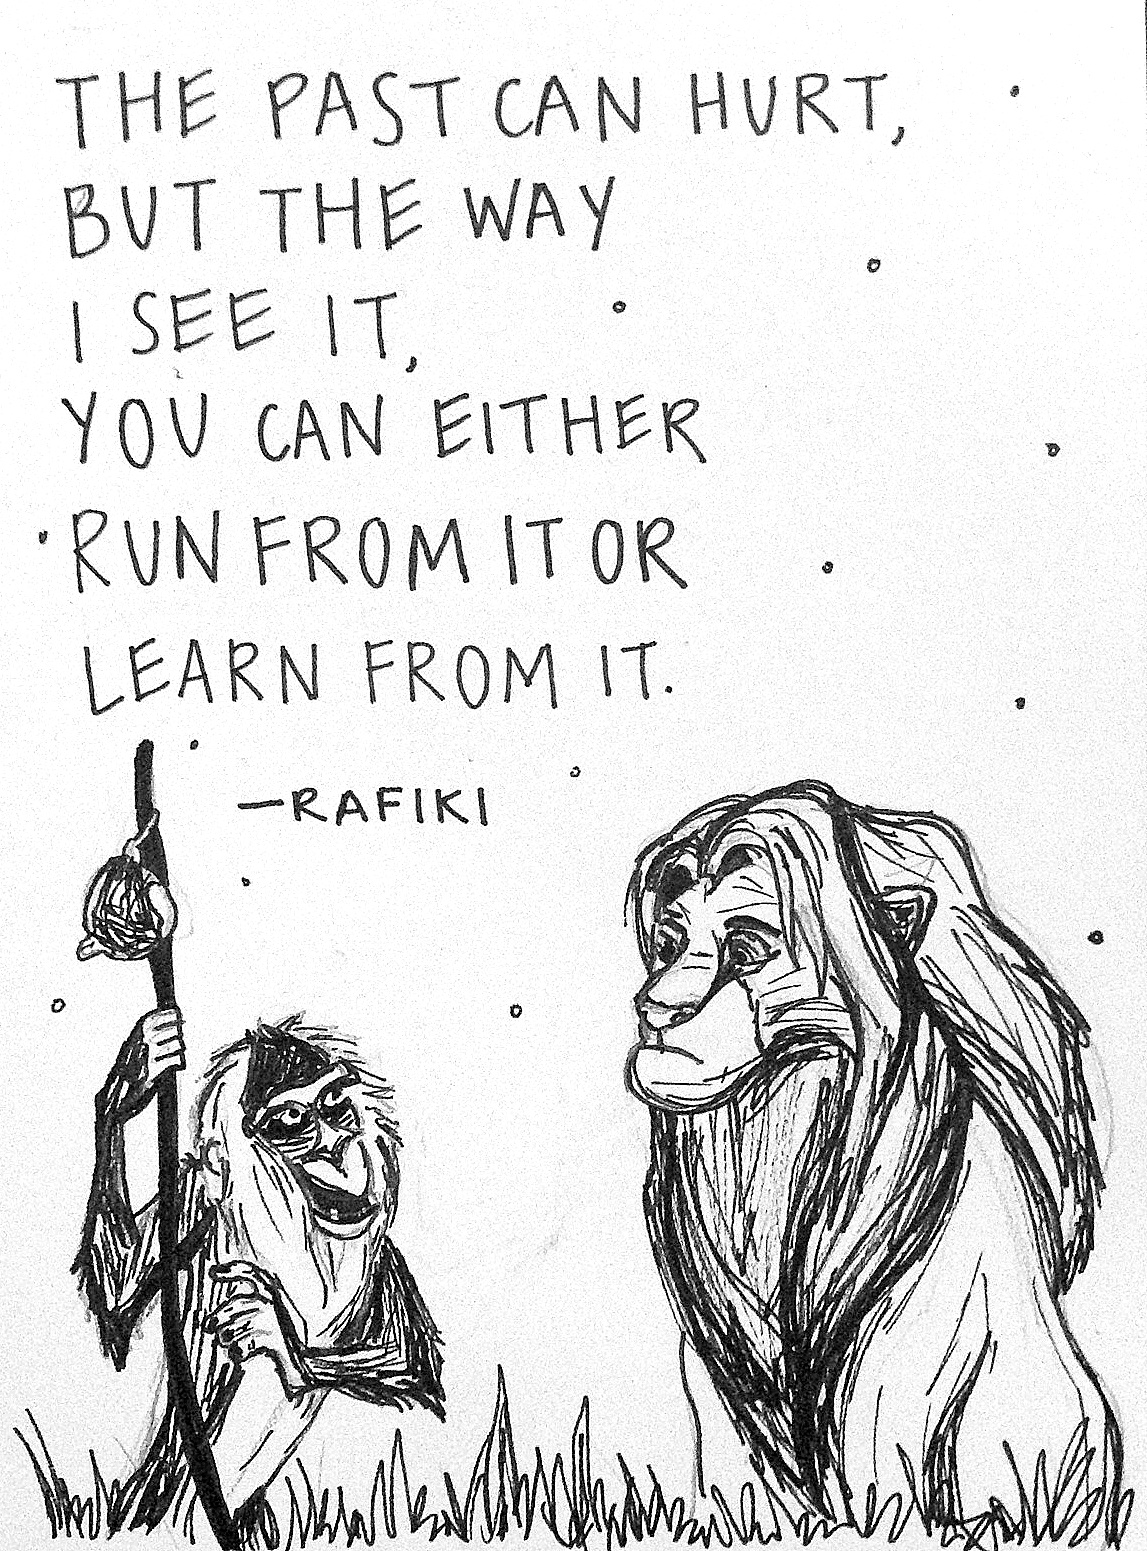 Drawn quote disney movie Quote Hudsy!:) Lion snuggling King